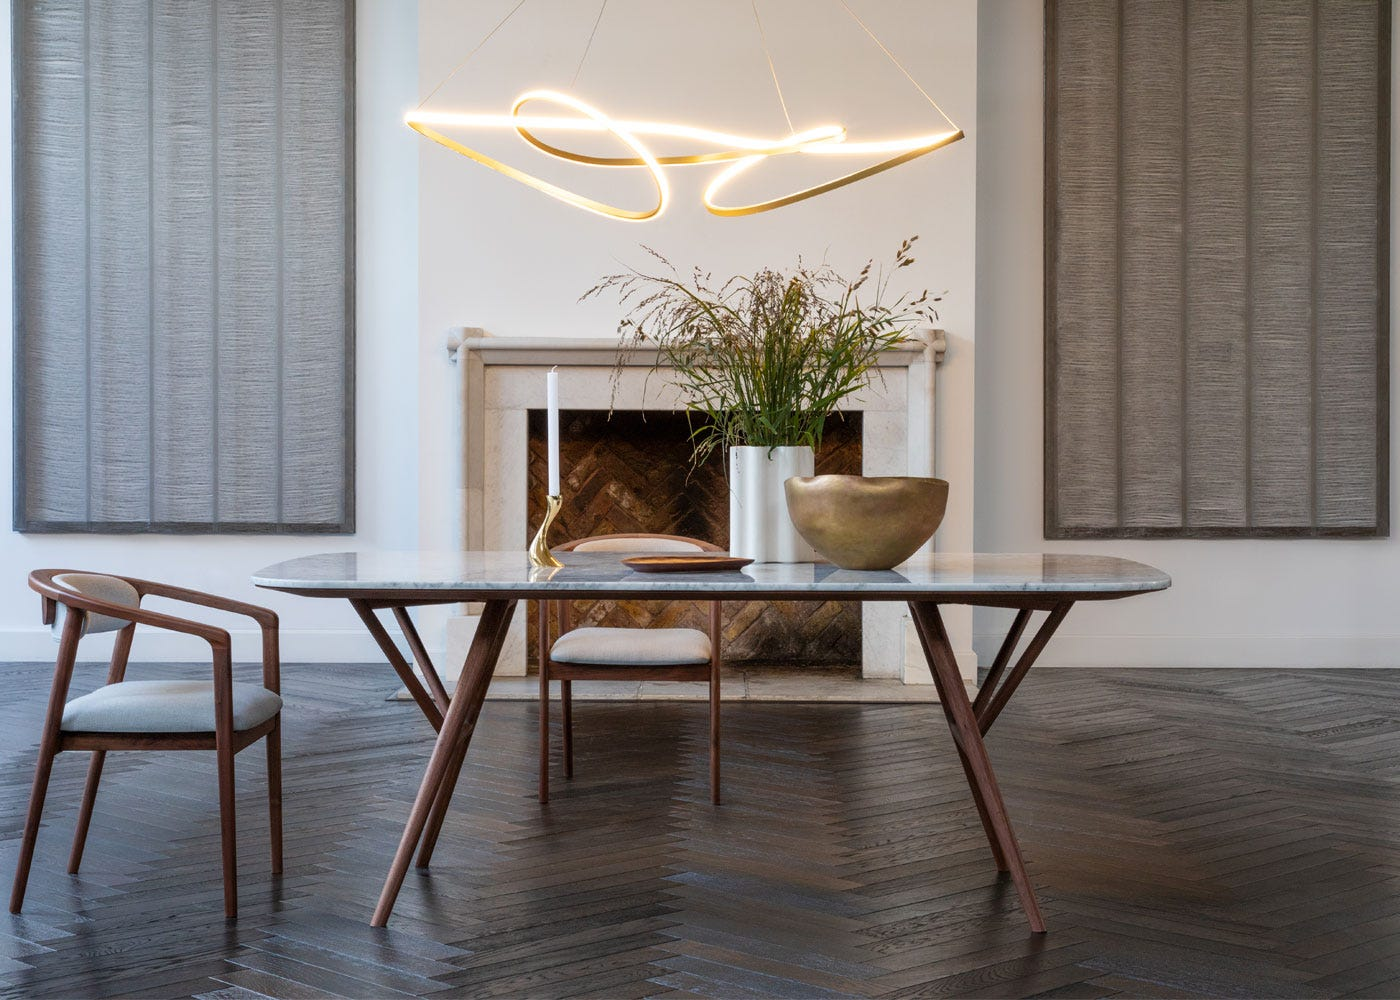 Anais dining table and chair, Ribbon XL pendant light.